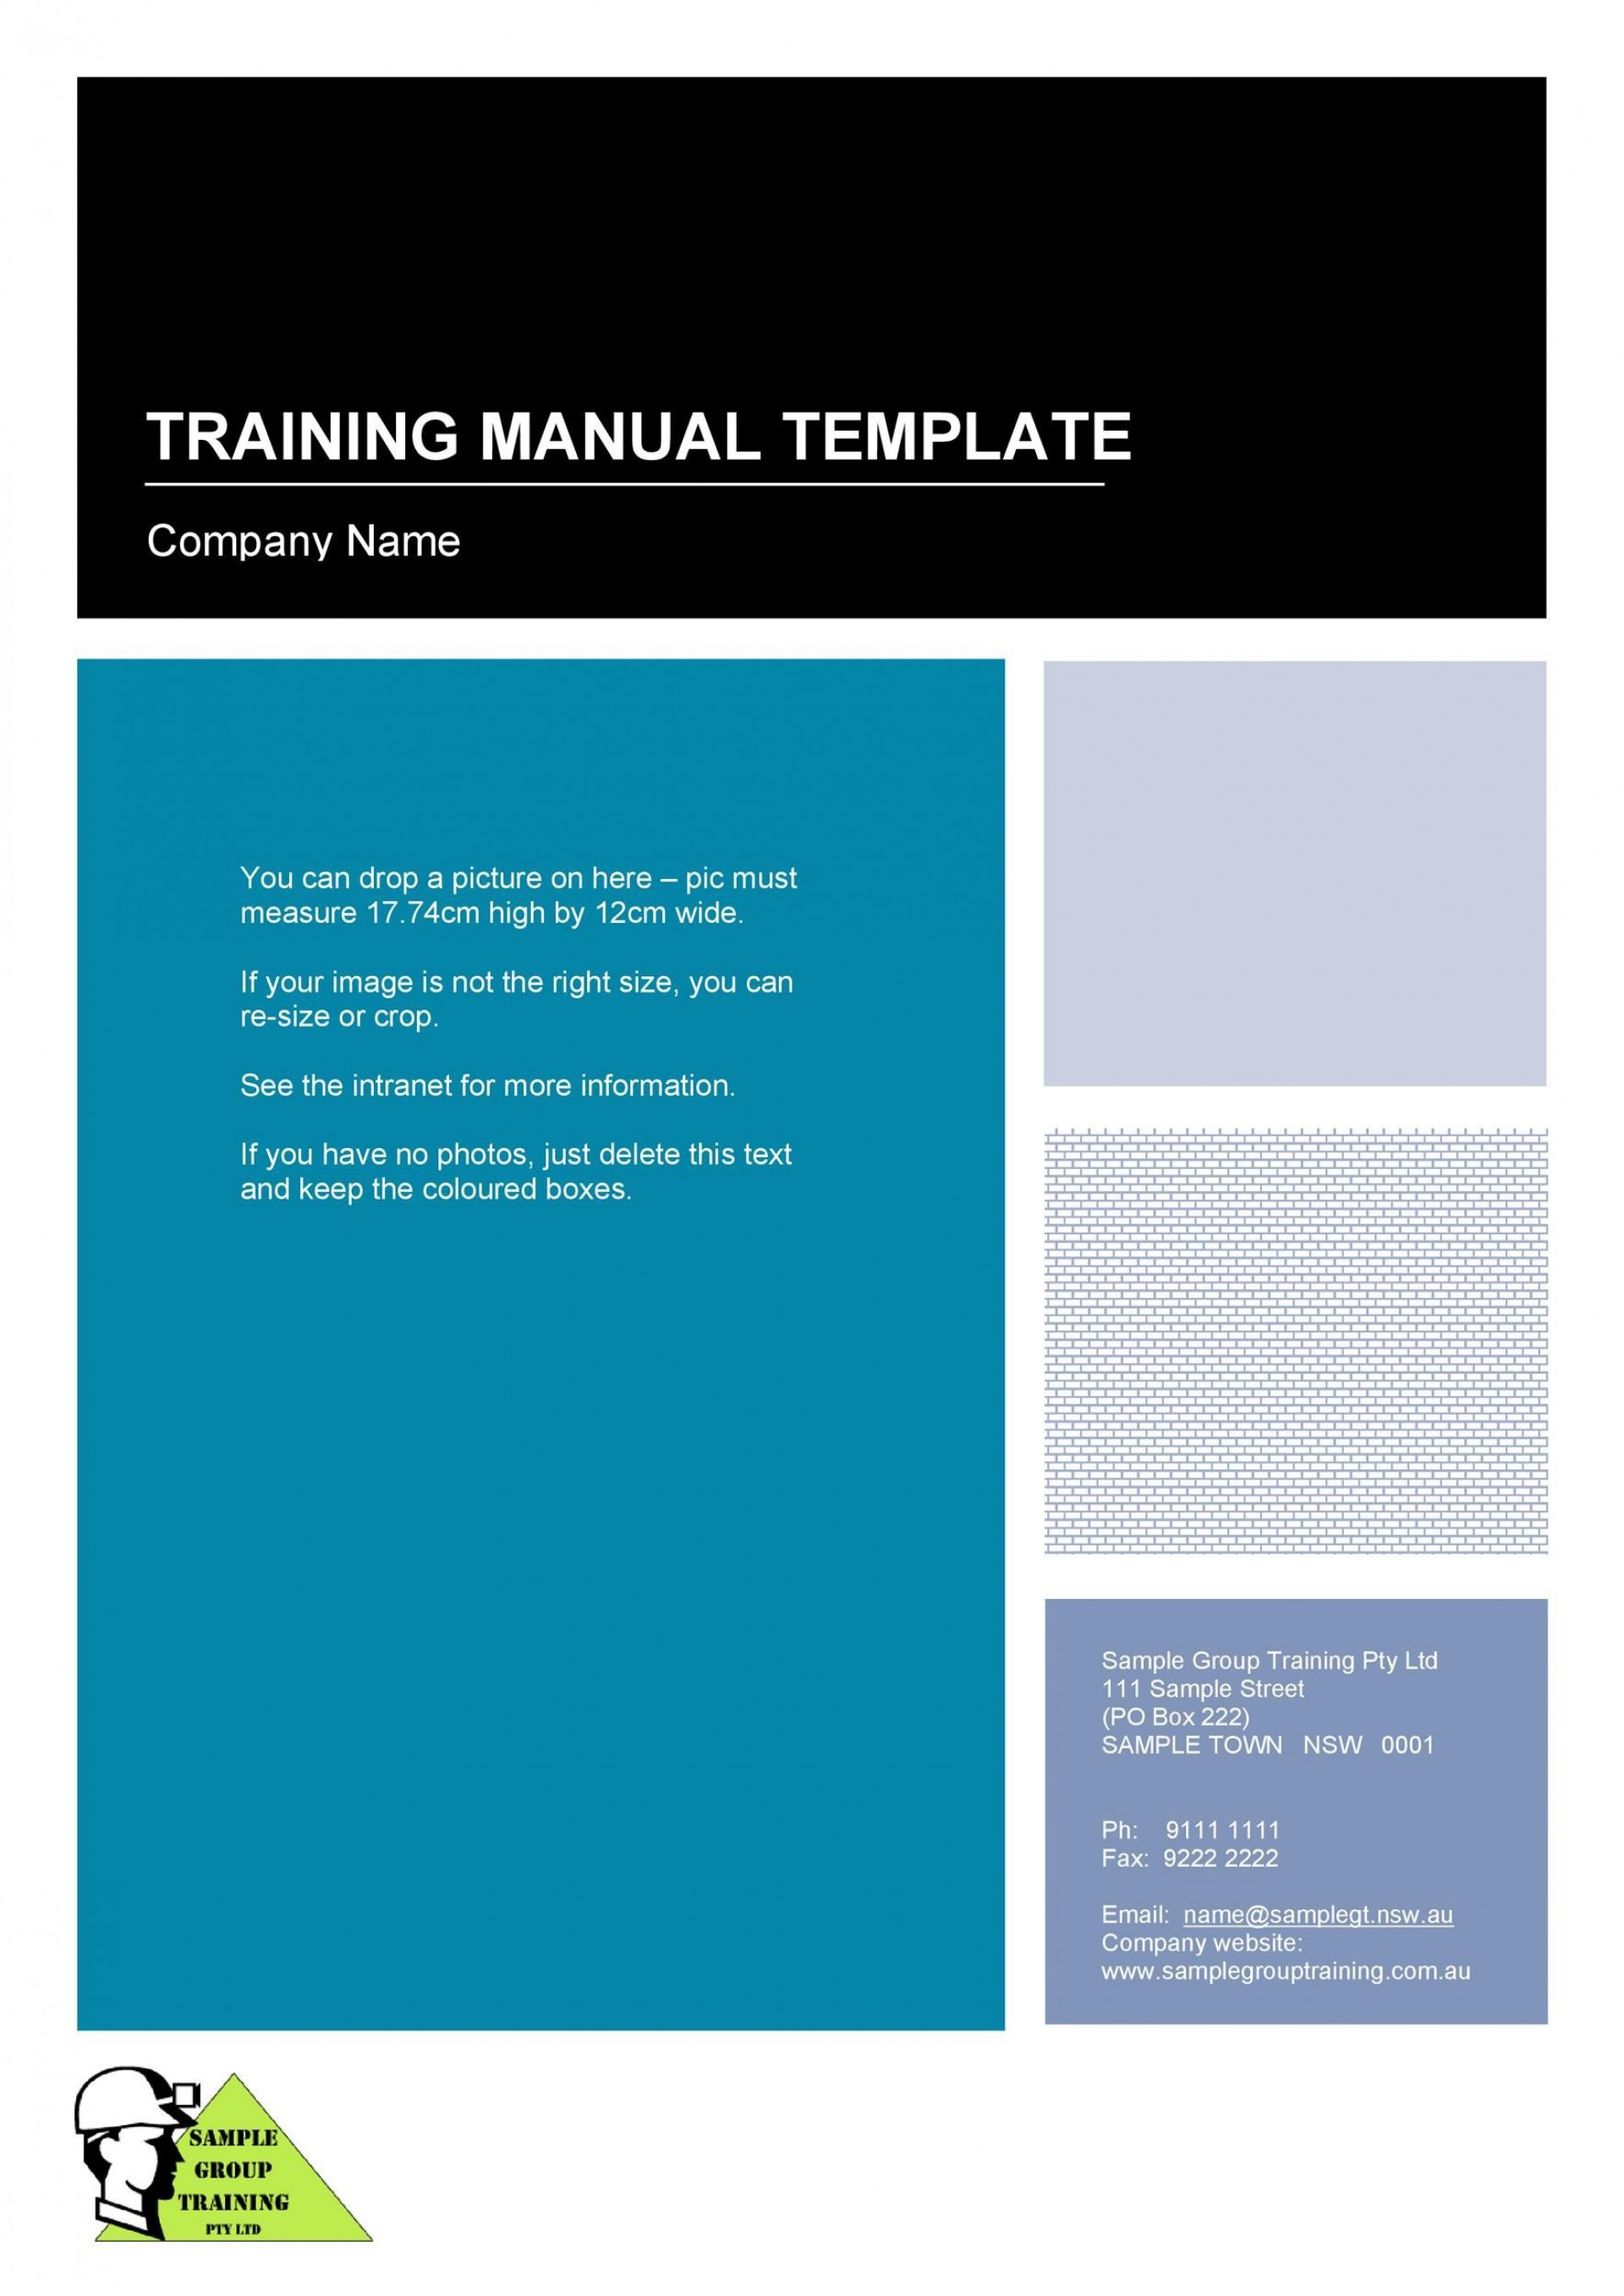 009 Excellent Free Employee Handbook Template Word High Def  Sample In Training Manual1920